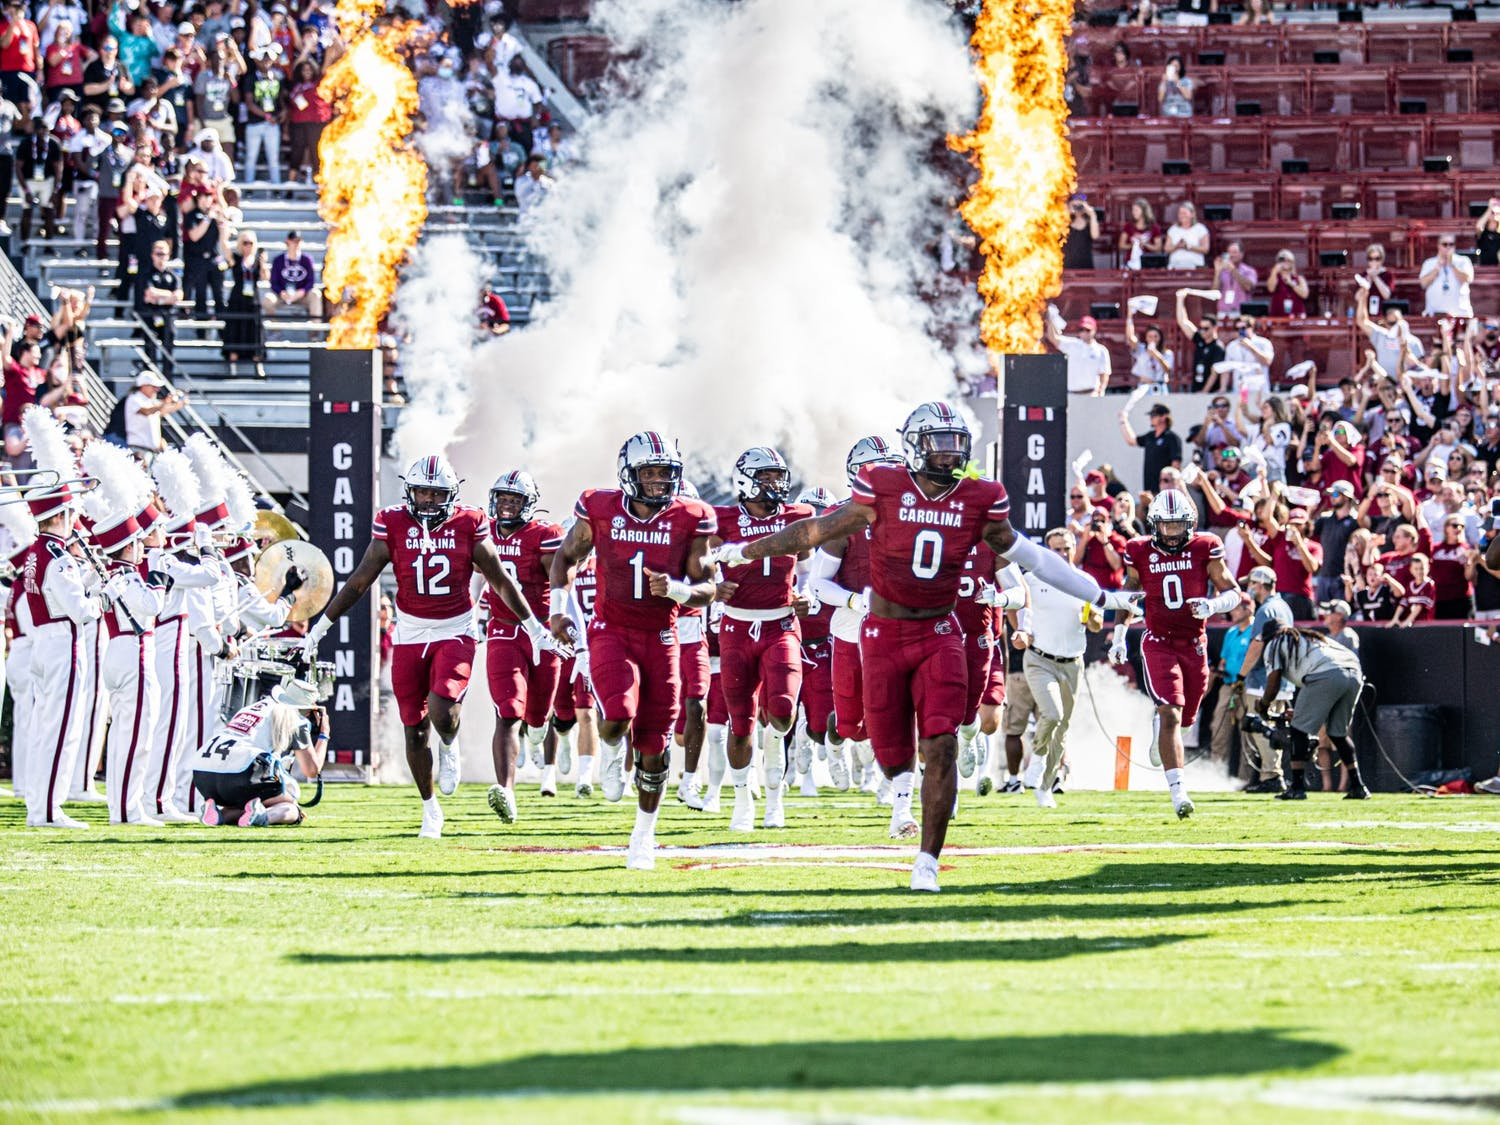 South Carolina football rushes the field for kickoff at the Troy football game Oct. 2, 2021.